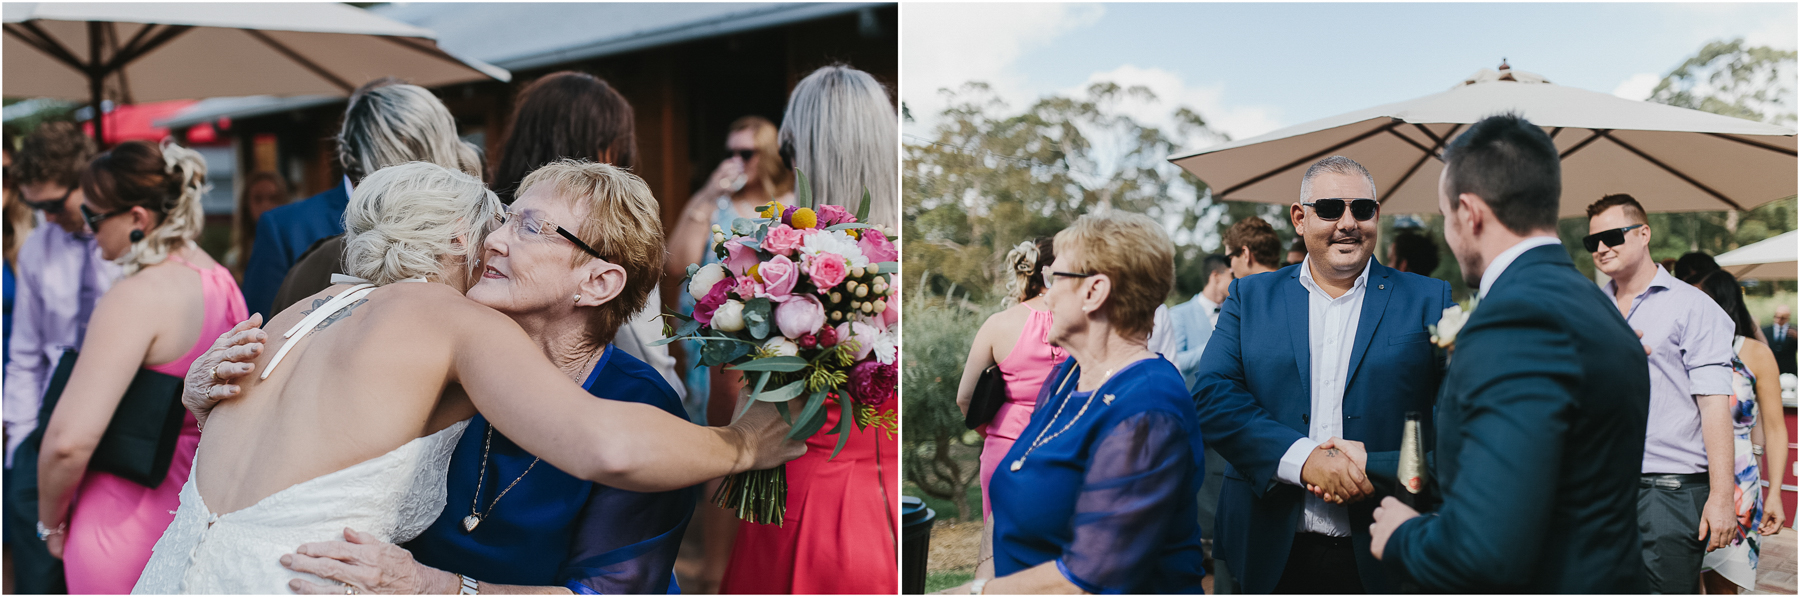 Courtney-Josh-Growwild-Bowral-southernhighlans-Wedding-55